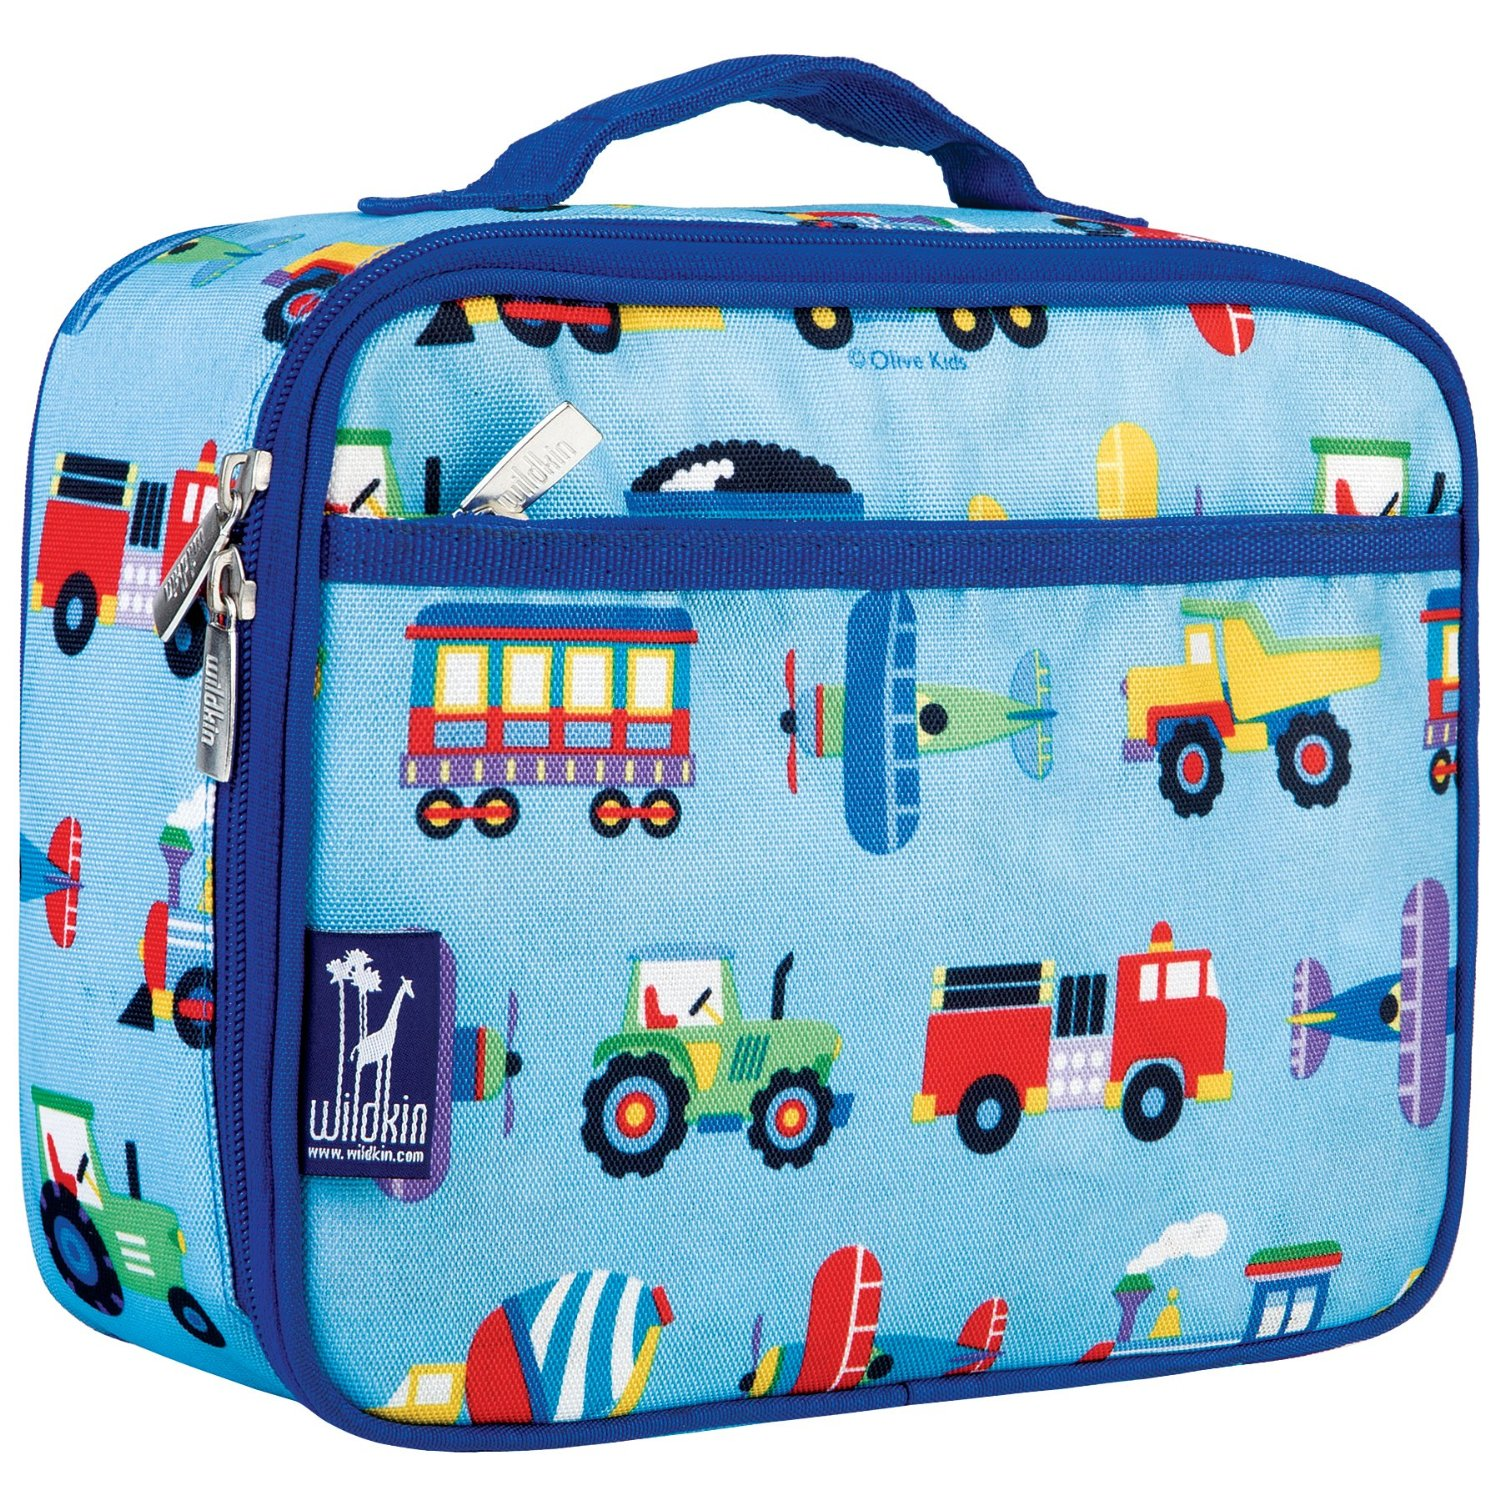 5 best wildkin lunch box u2013 stylish solution to pack your lunch